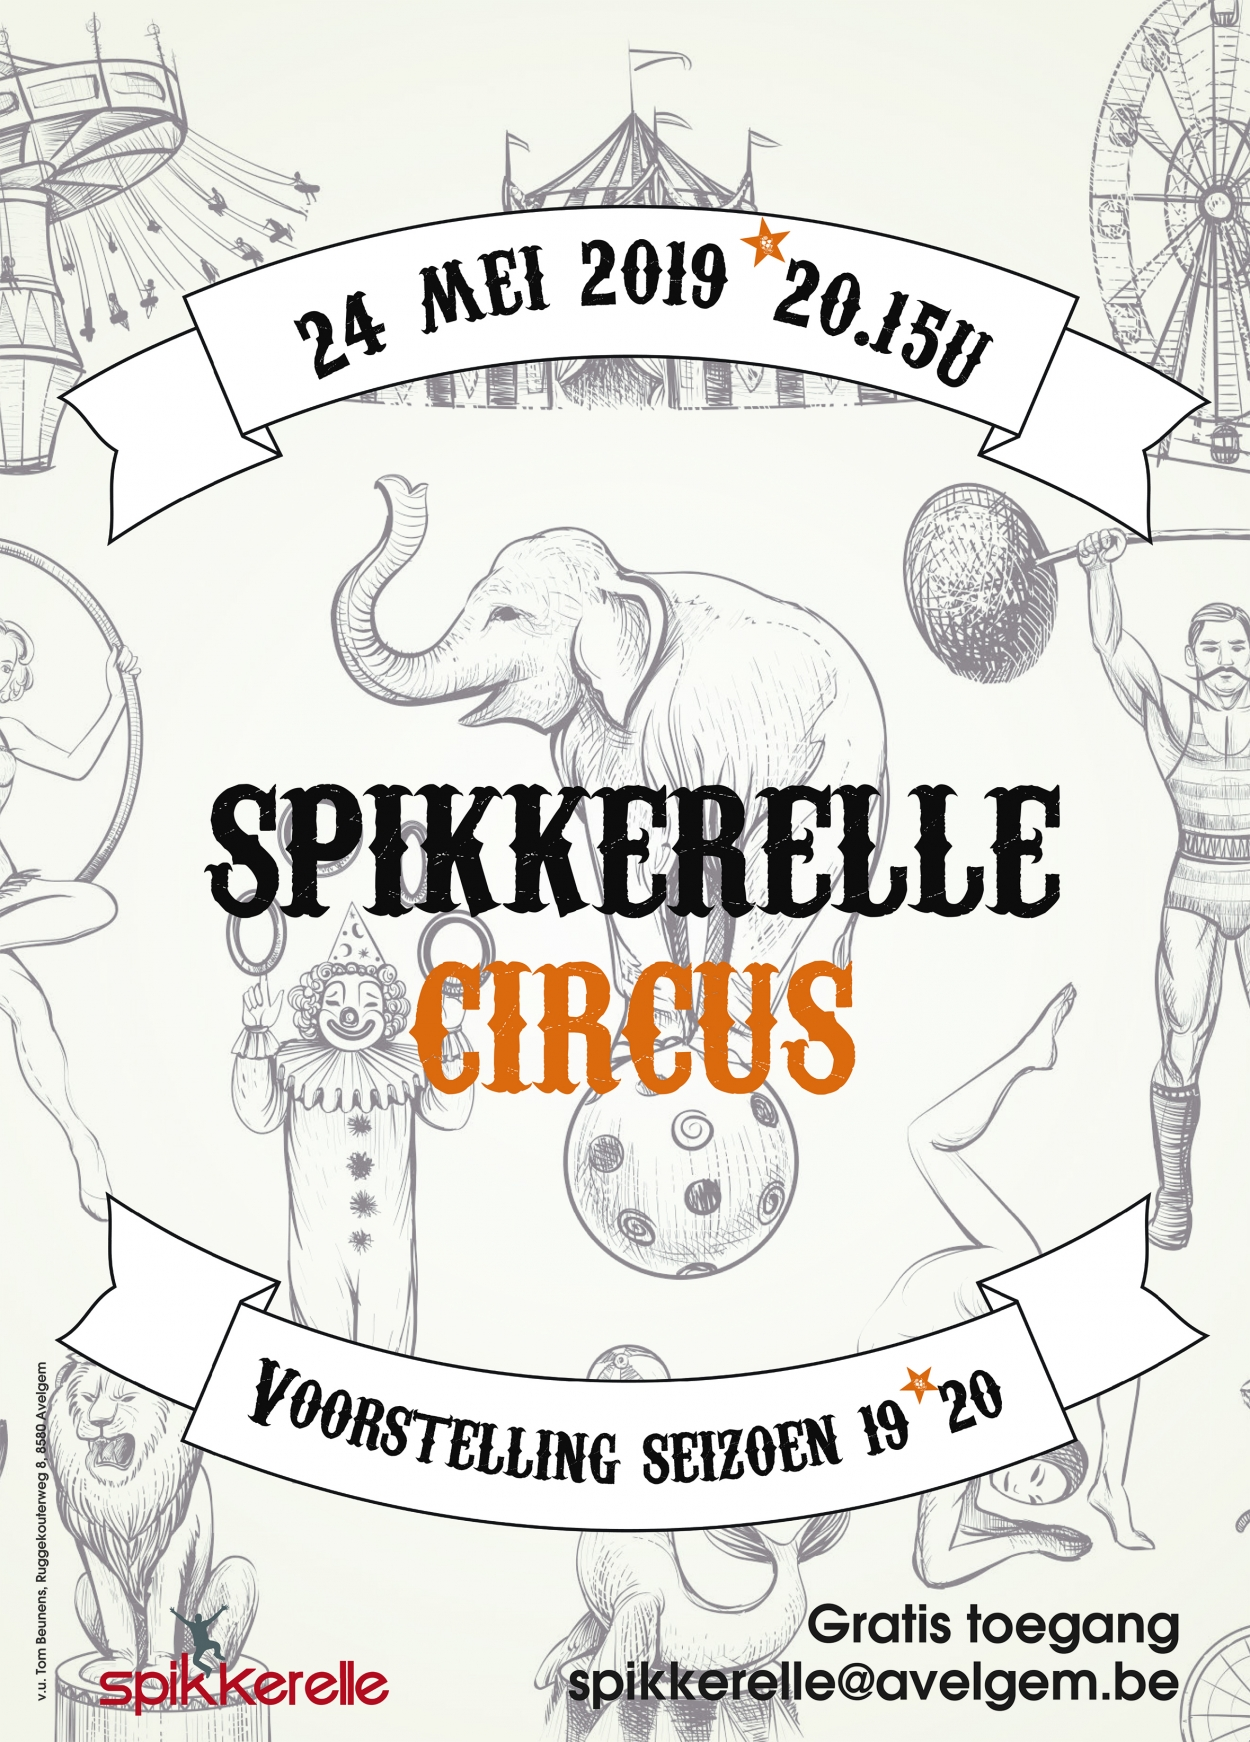 Spikkerelle circus